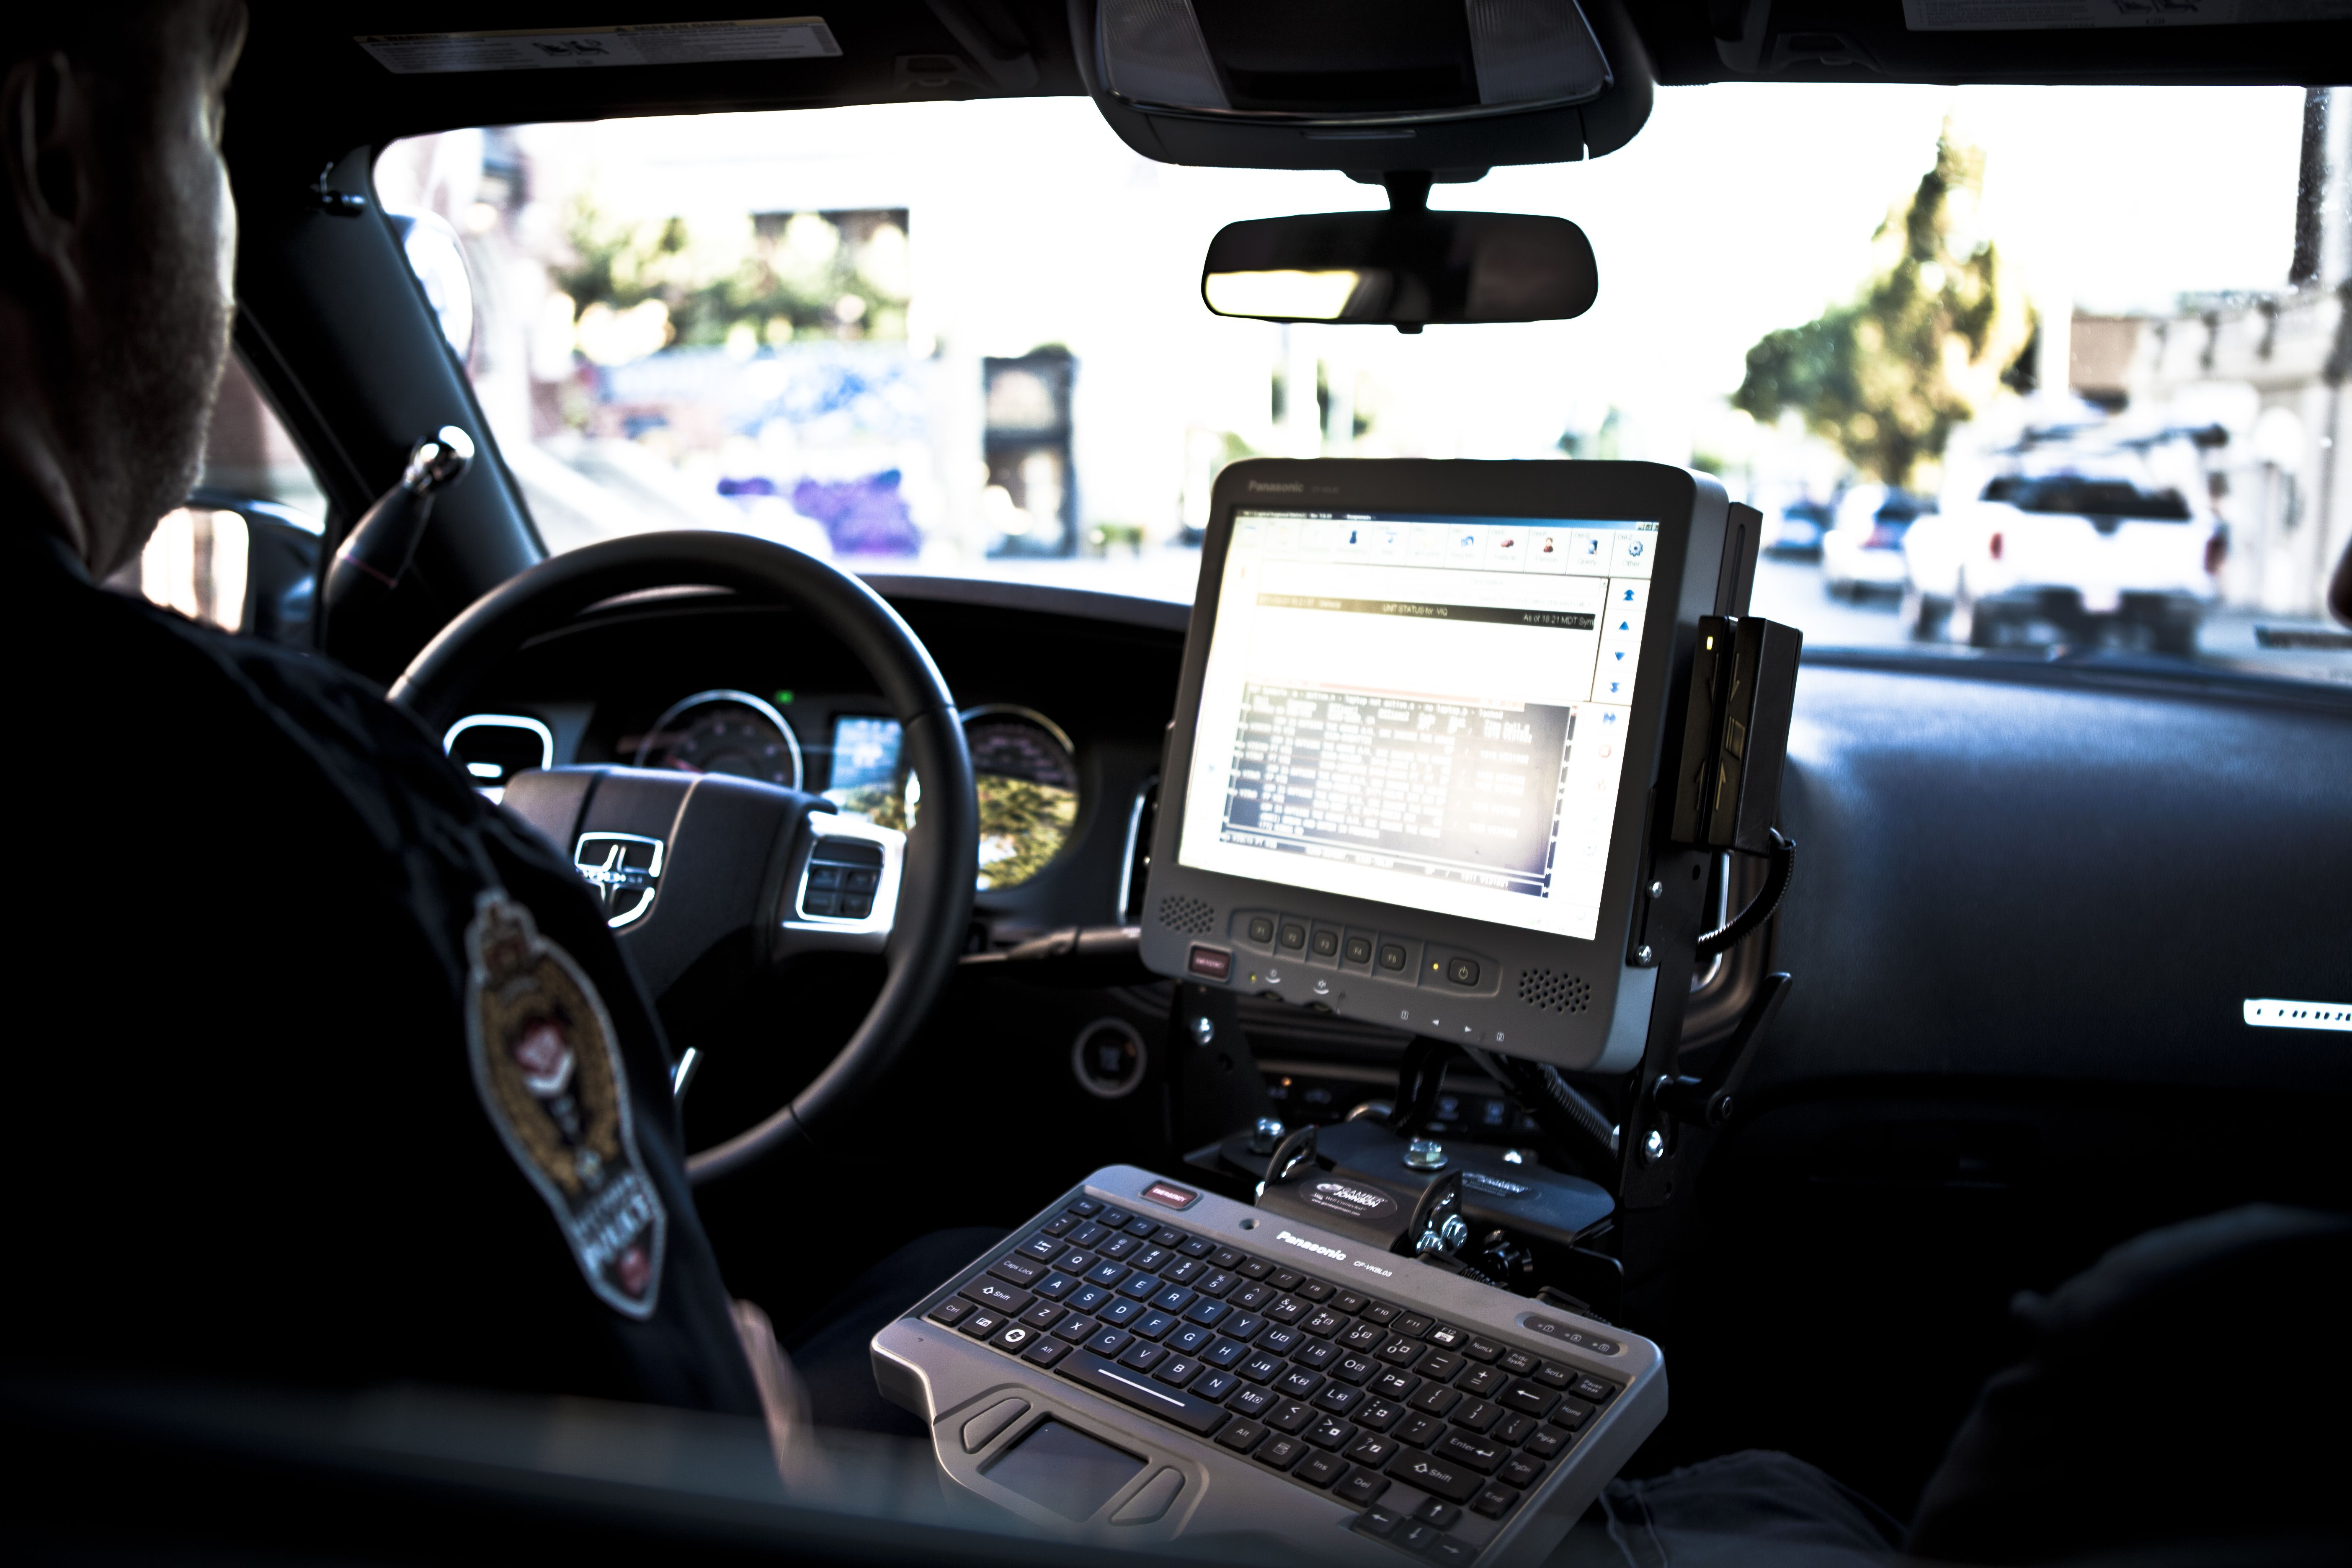 Dodge Charge Police Car Interior With Vicpd Police Cars Victoria Police Dream Cars